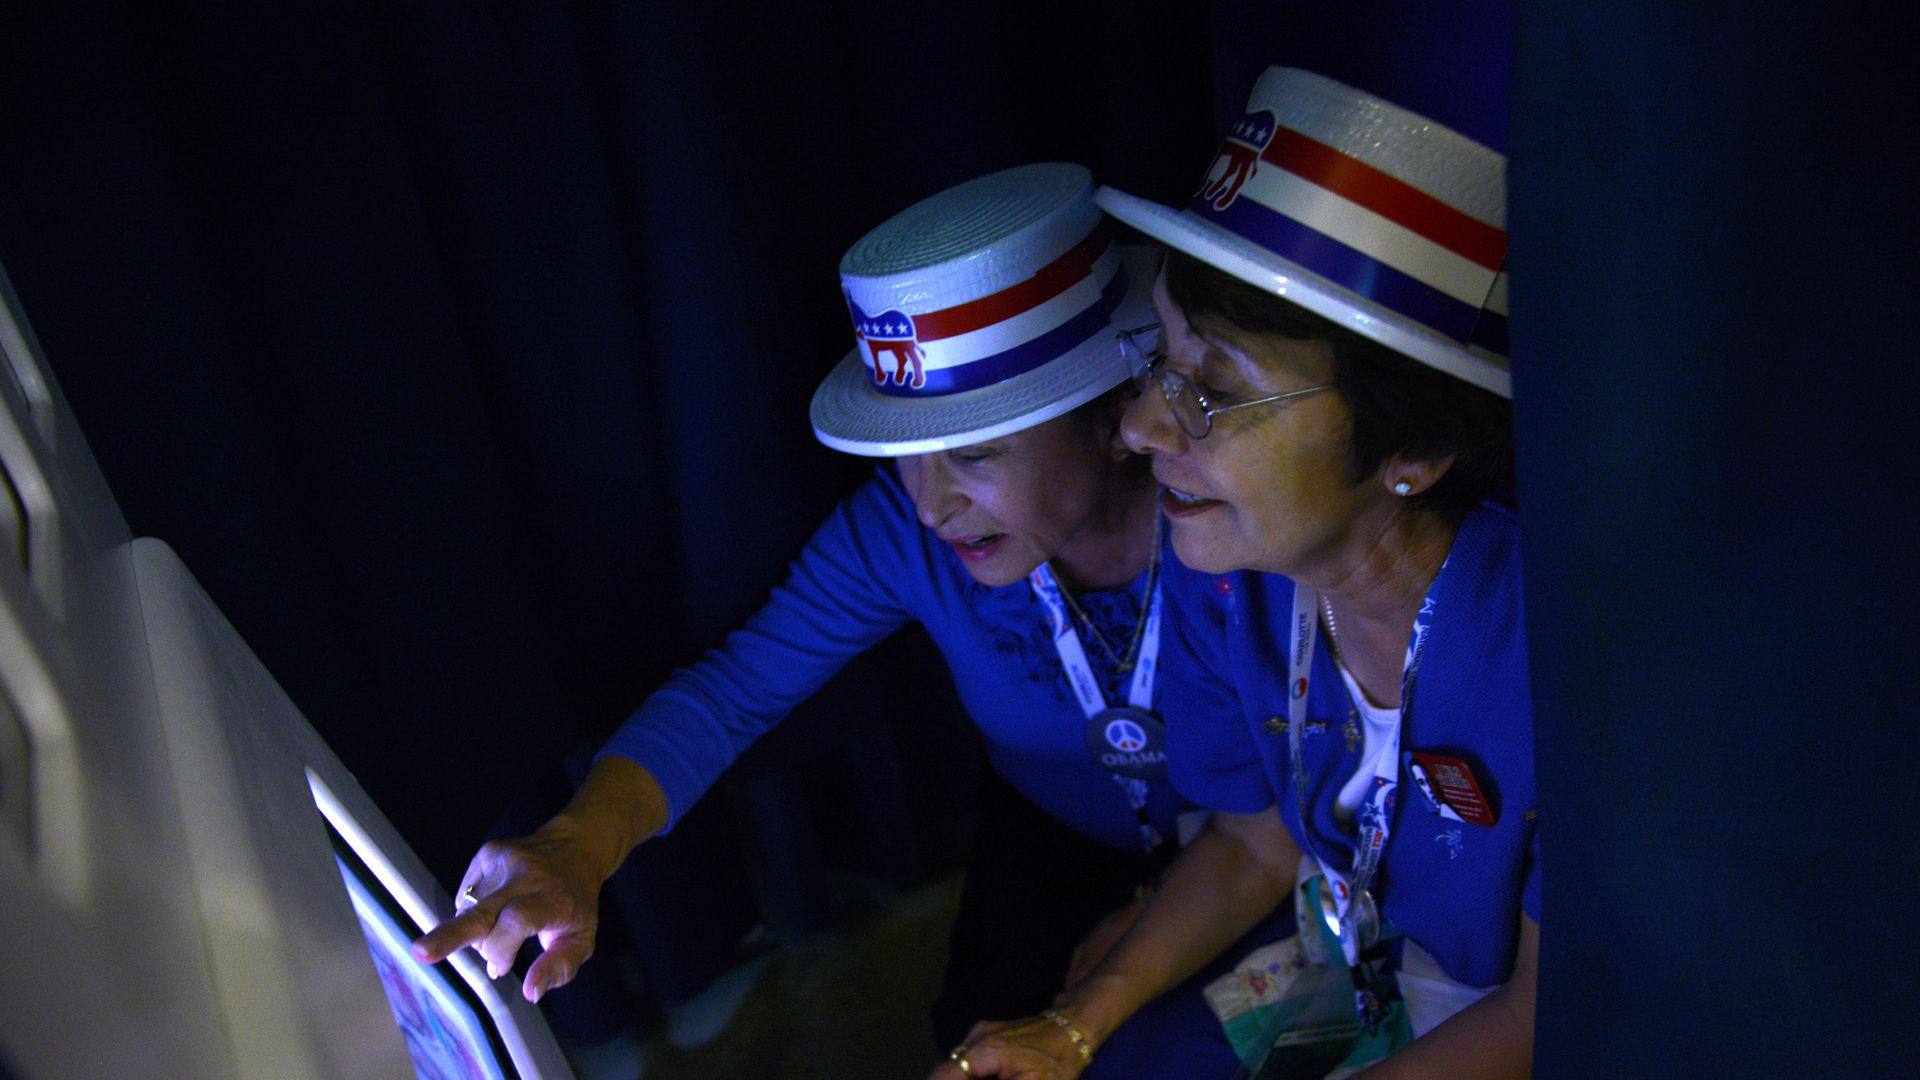 Two women in democratic red white blue hats touch a touch screen